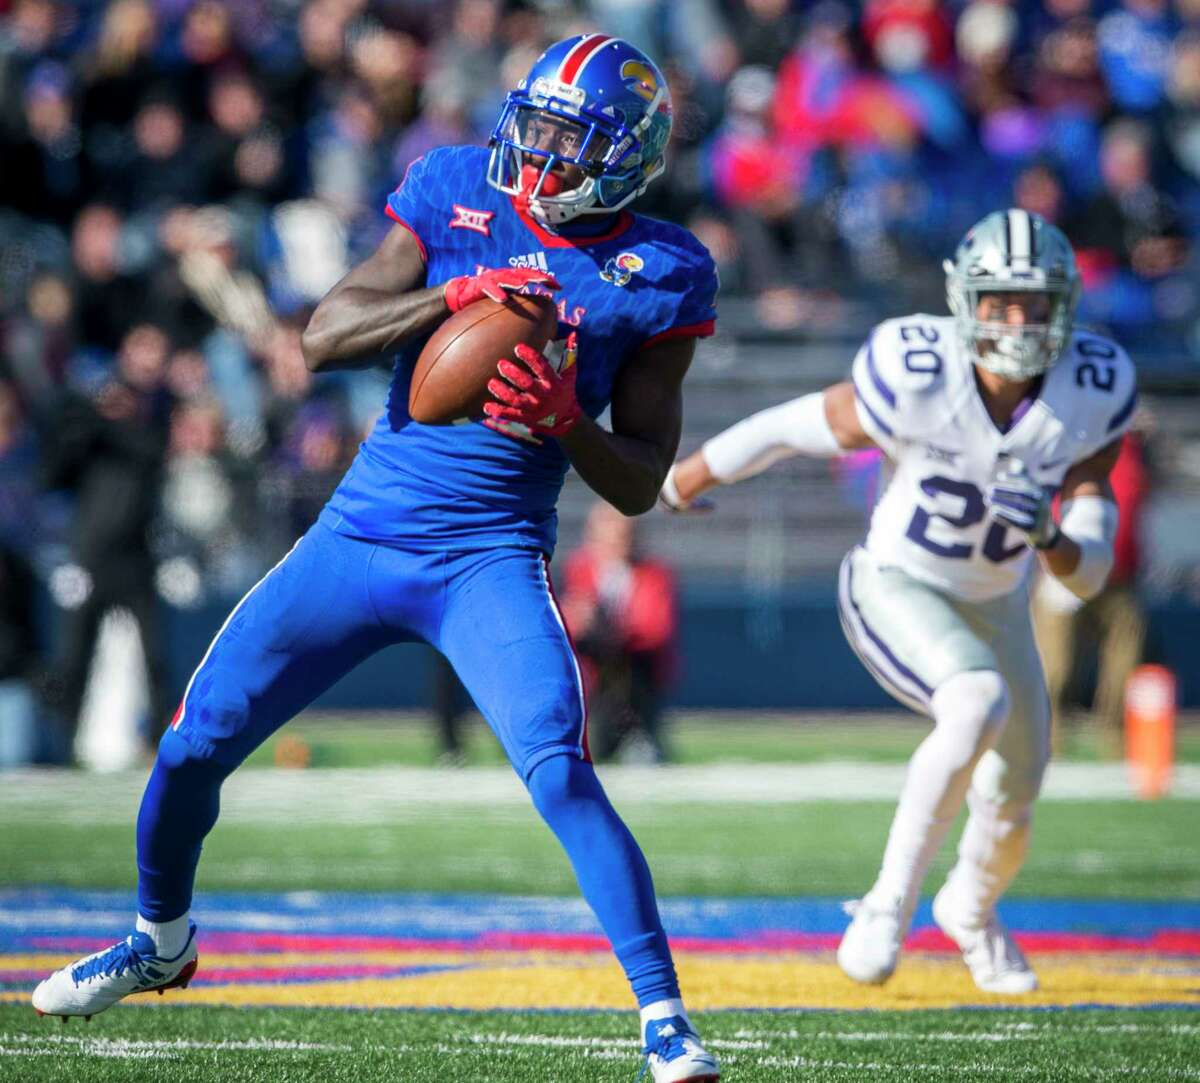 Kansas wide receiver Steven Sims Jr. (11) catches a pass in front of Kansas State defensive back Denzel Goolsby (20) in the first half at Memorial Stadium in Lawrence, Kan., on Saturday, Oct. 28, 2017. K-State won, 30-20. (Shane Keyser/Kansas City Star/TNS)